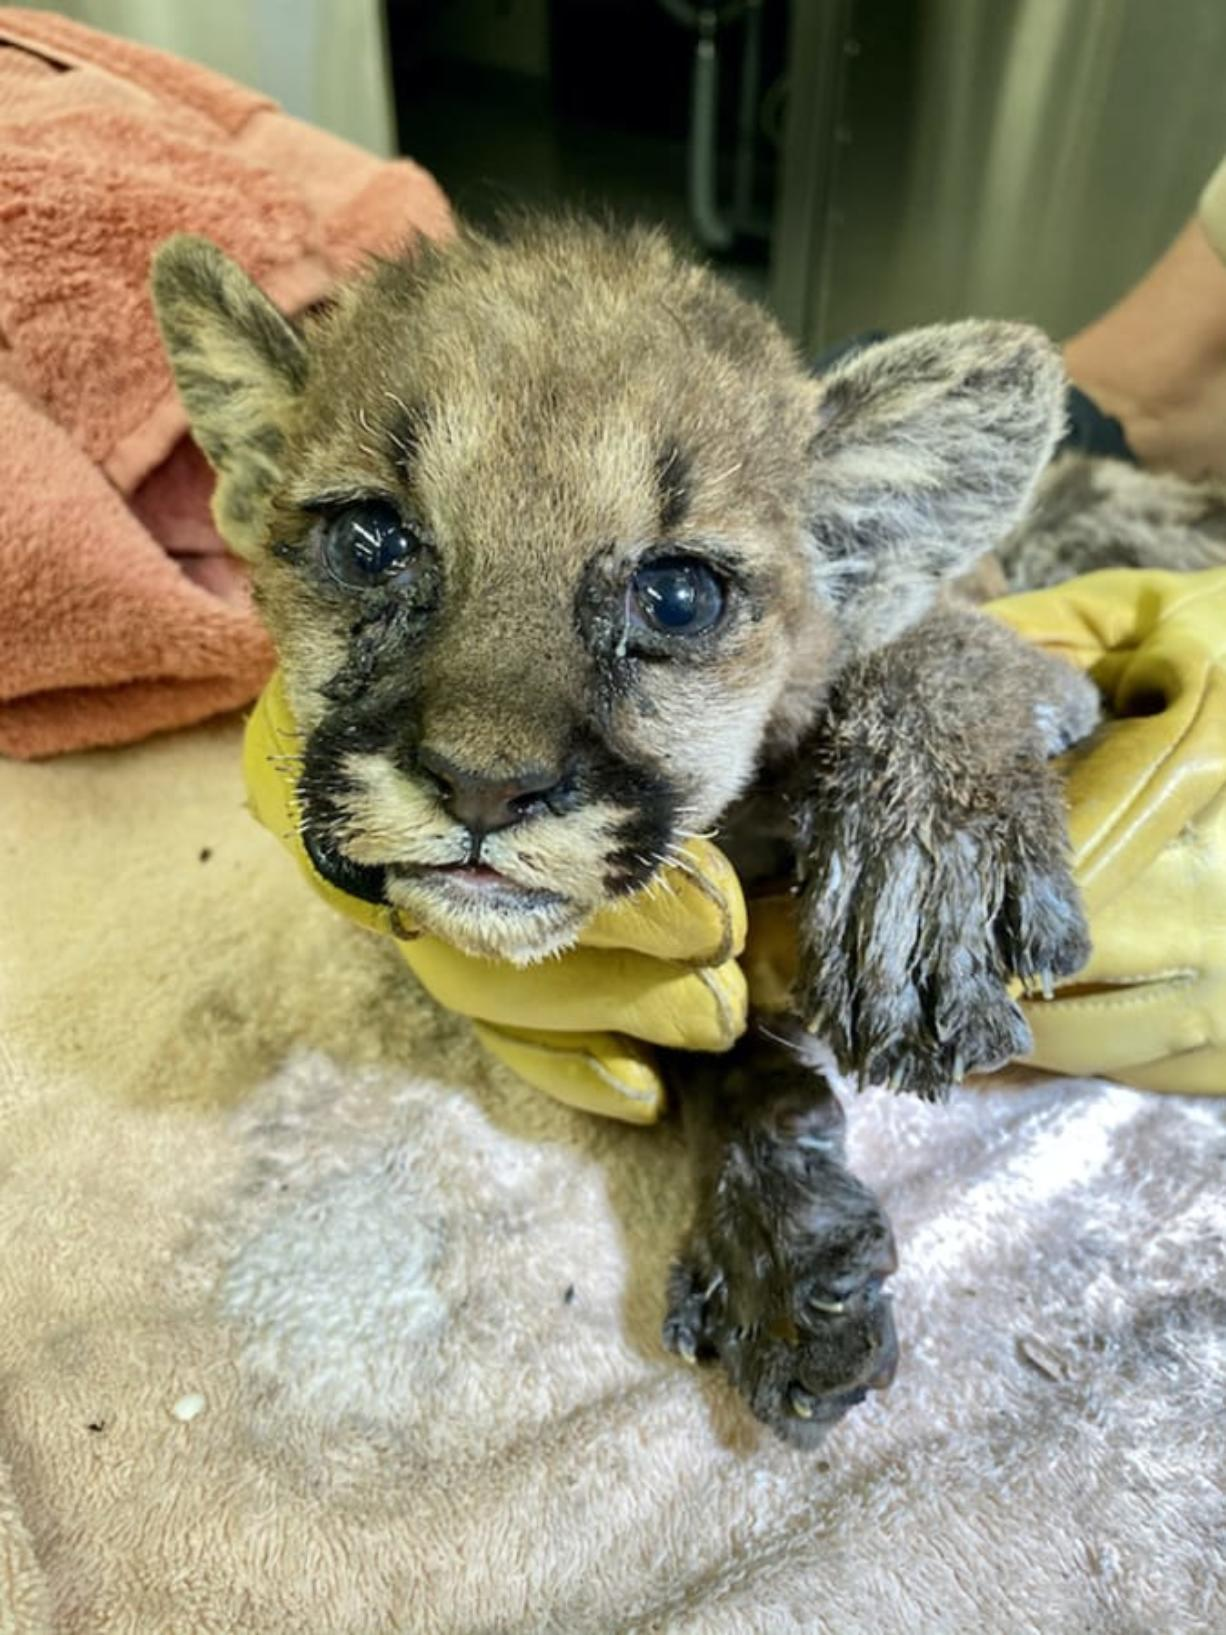 After 47 days healing at the Oakland Zoo, Capt. Cal, a cougar cub, will move to the Columbus Zoo and Aquarium in Ohio, officials said.